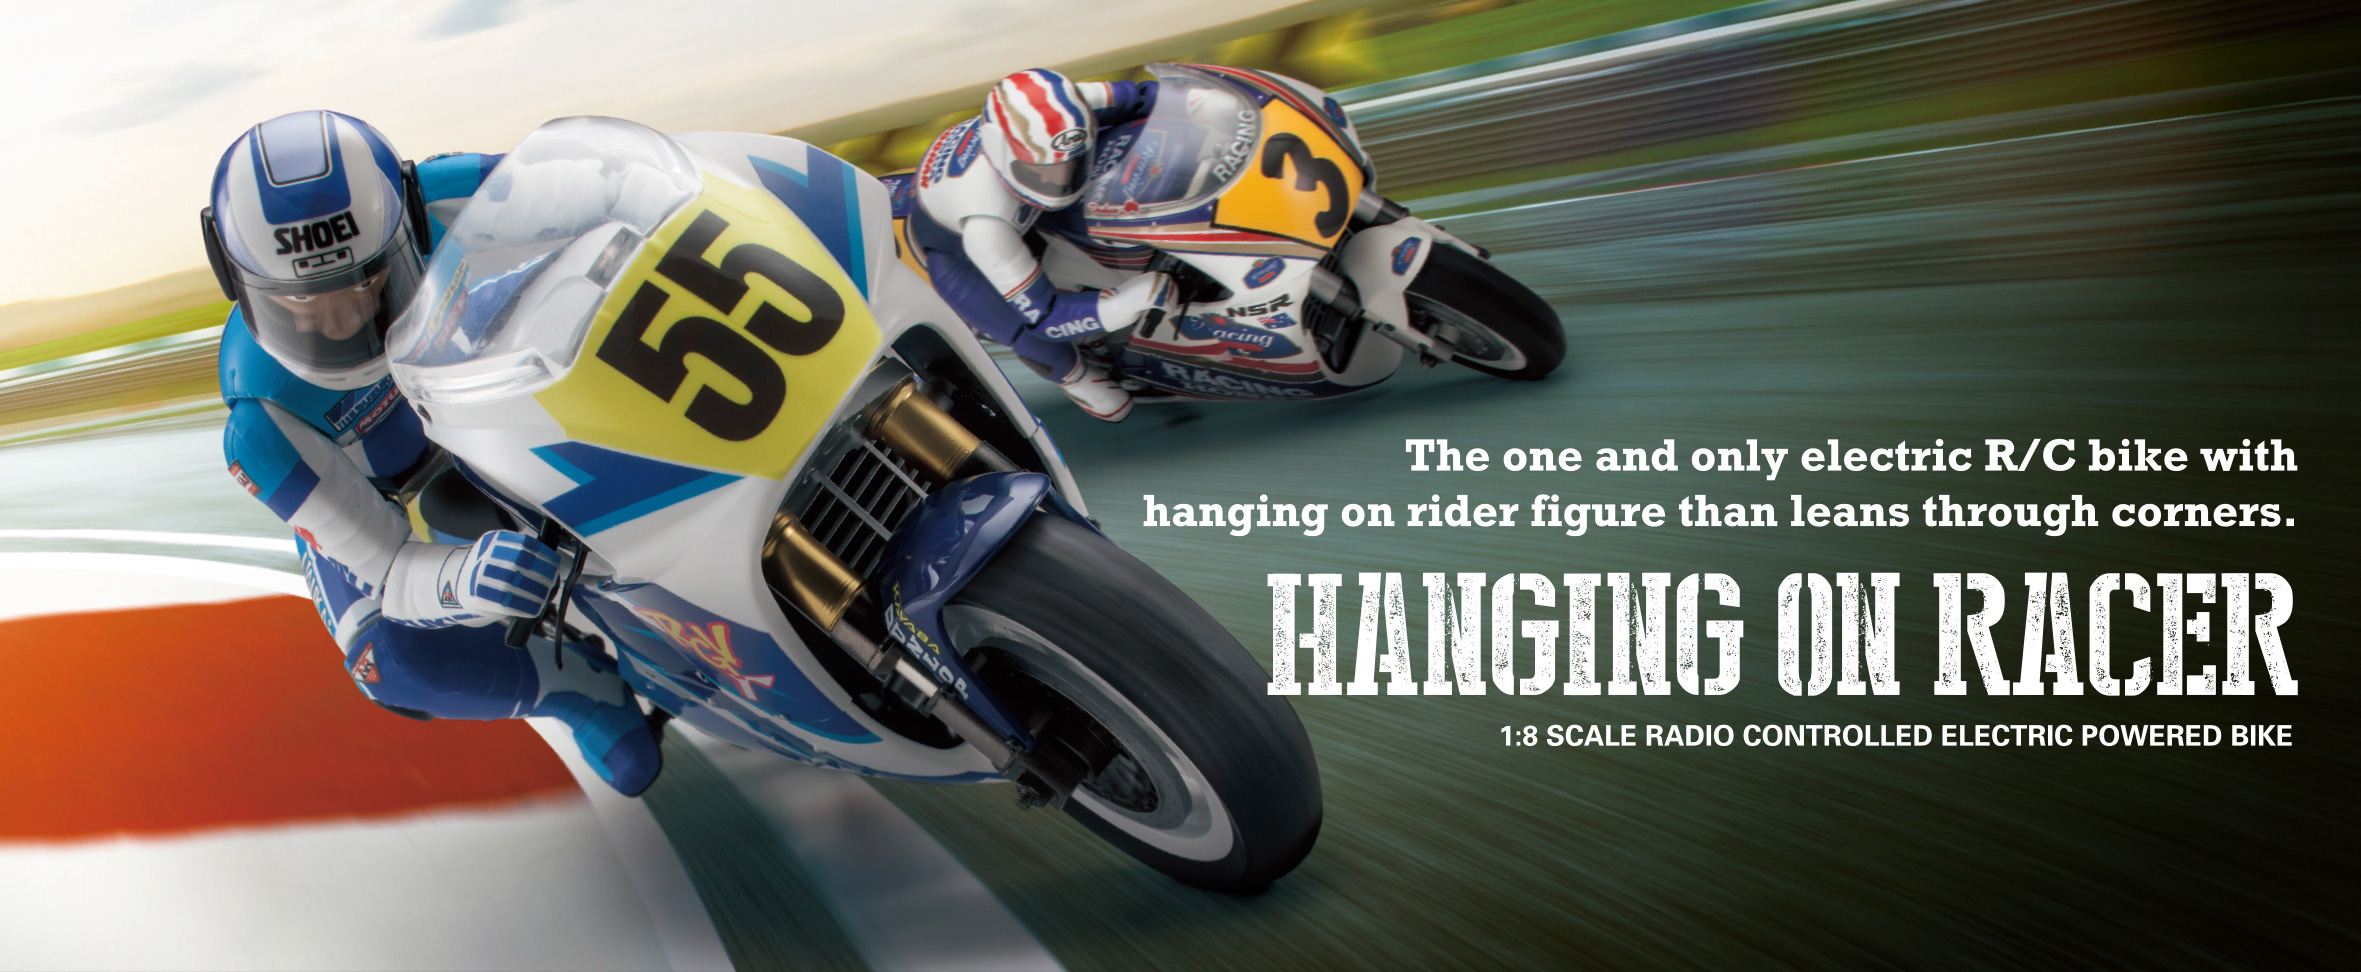 HANGING ON RACER